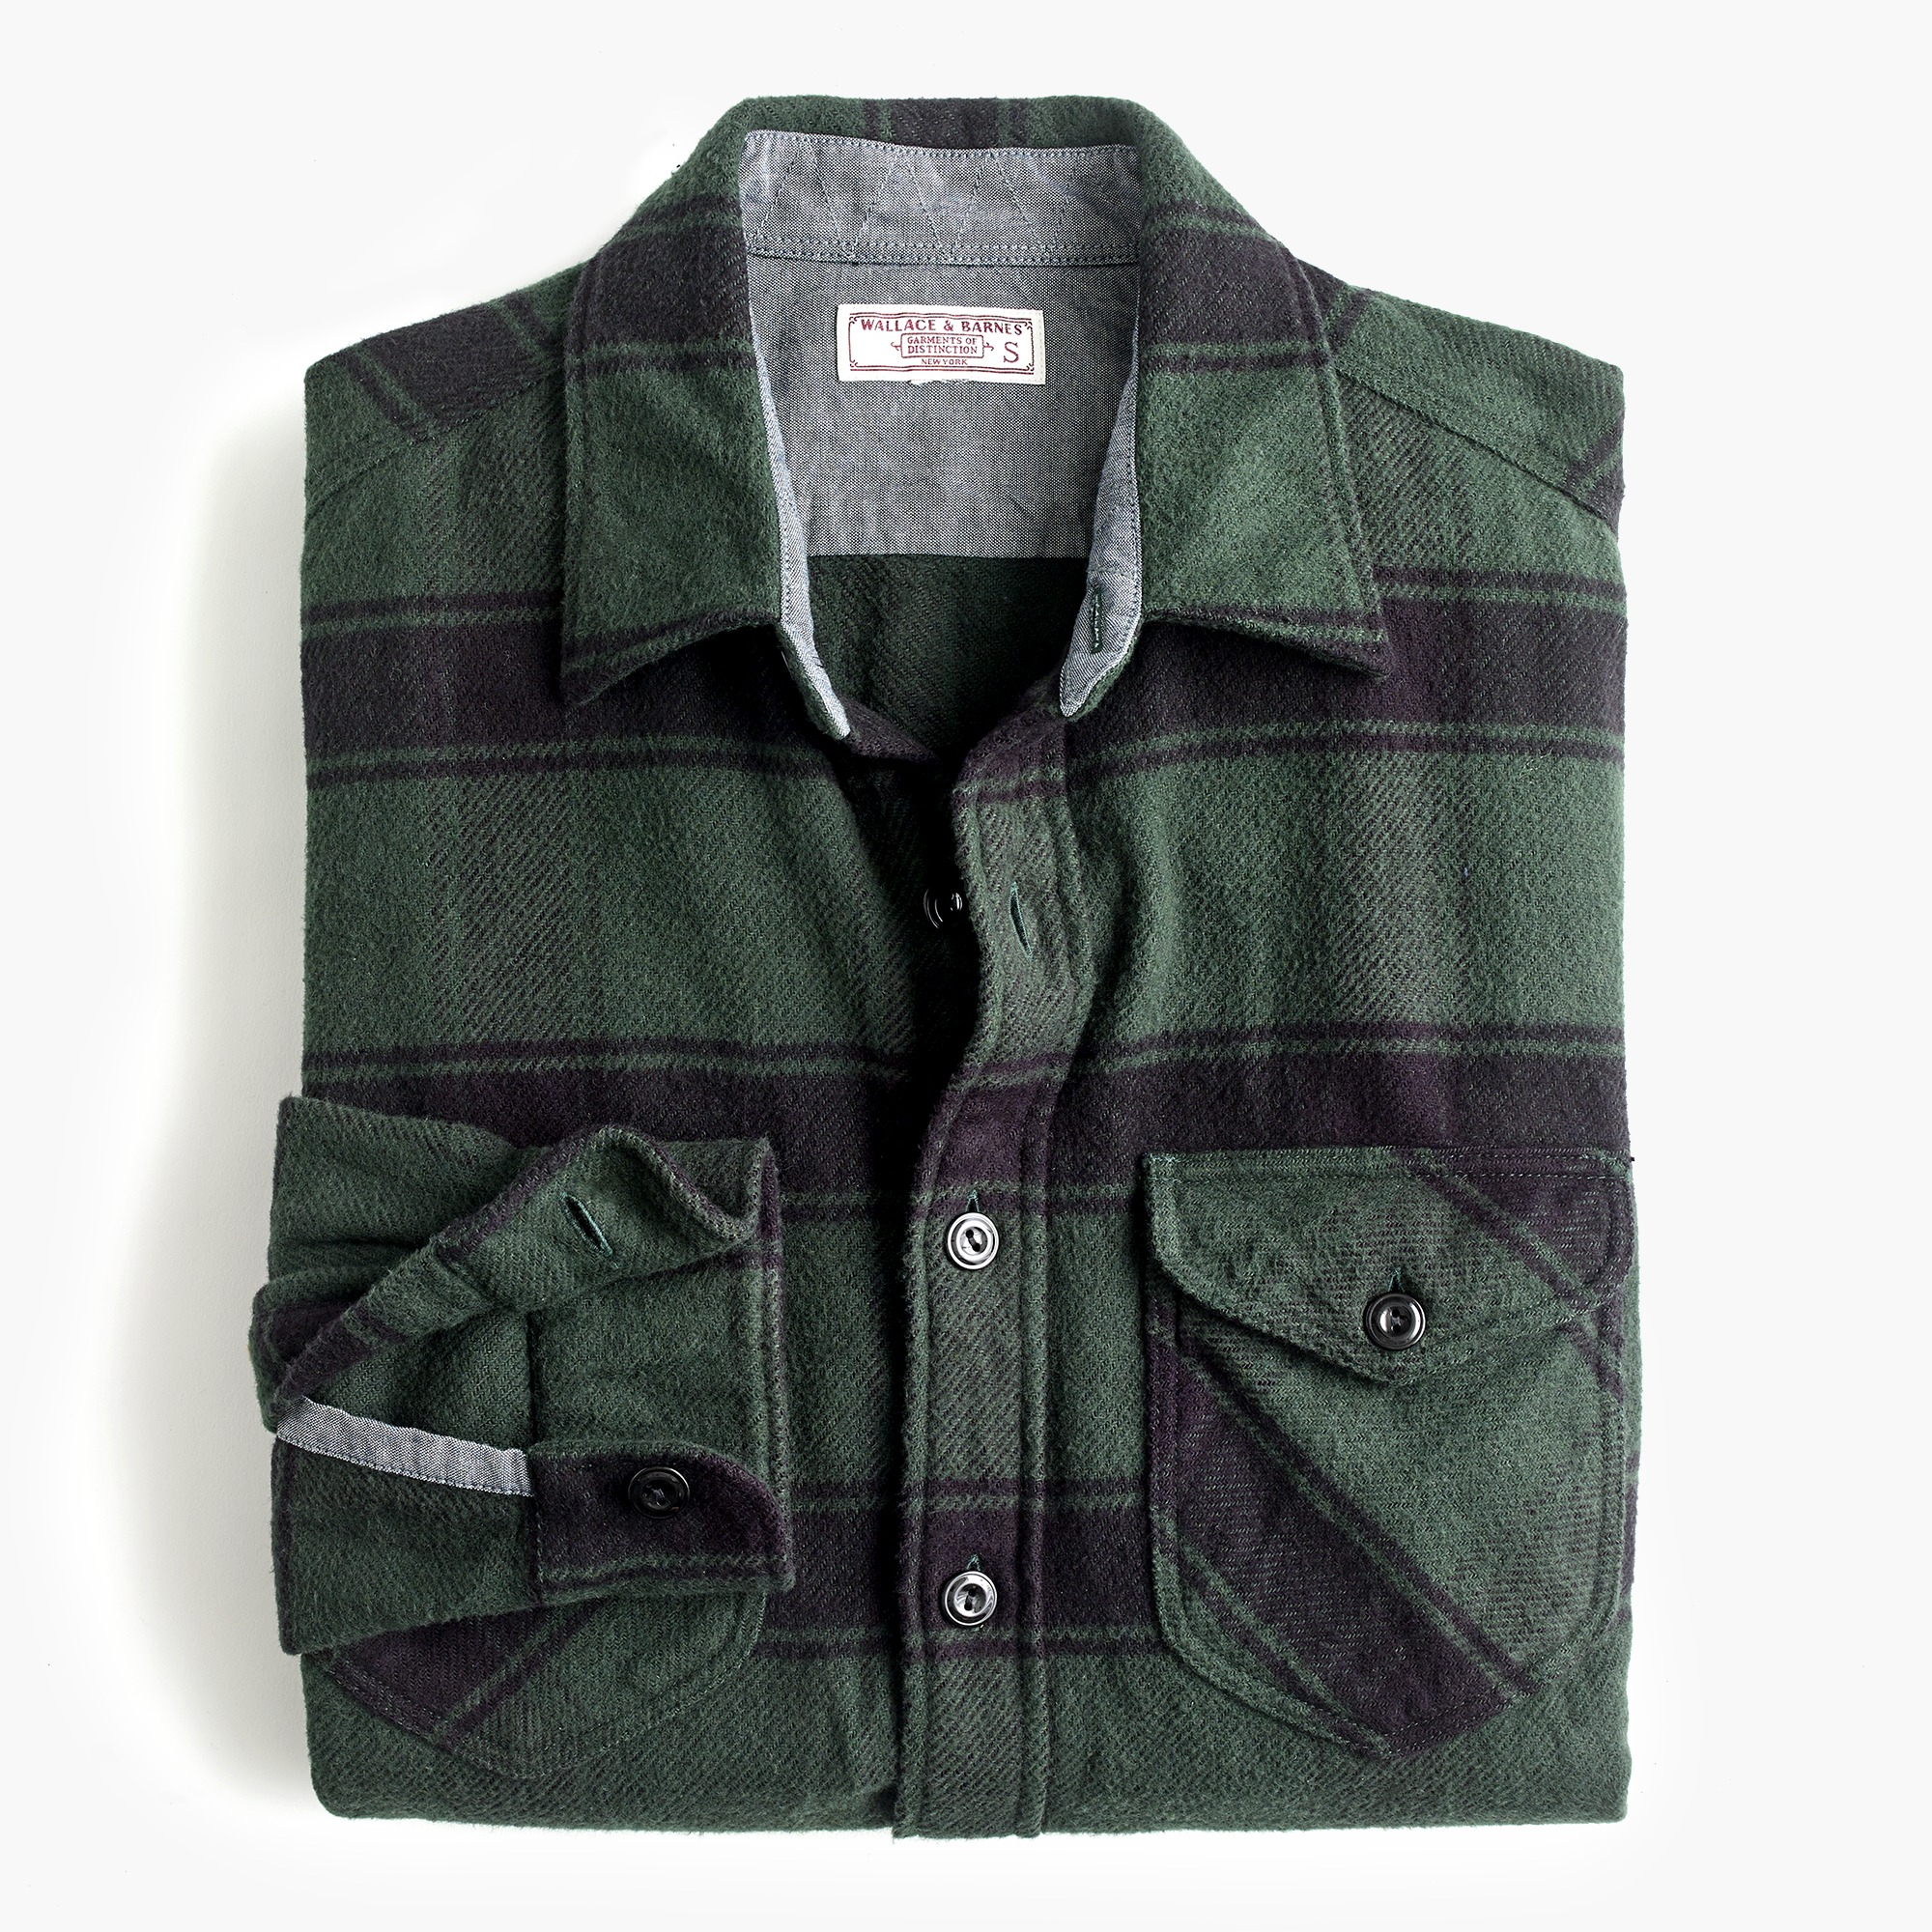 mens Wallace & Barnes heavyweight flannel shirt in stable plaid